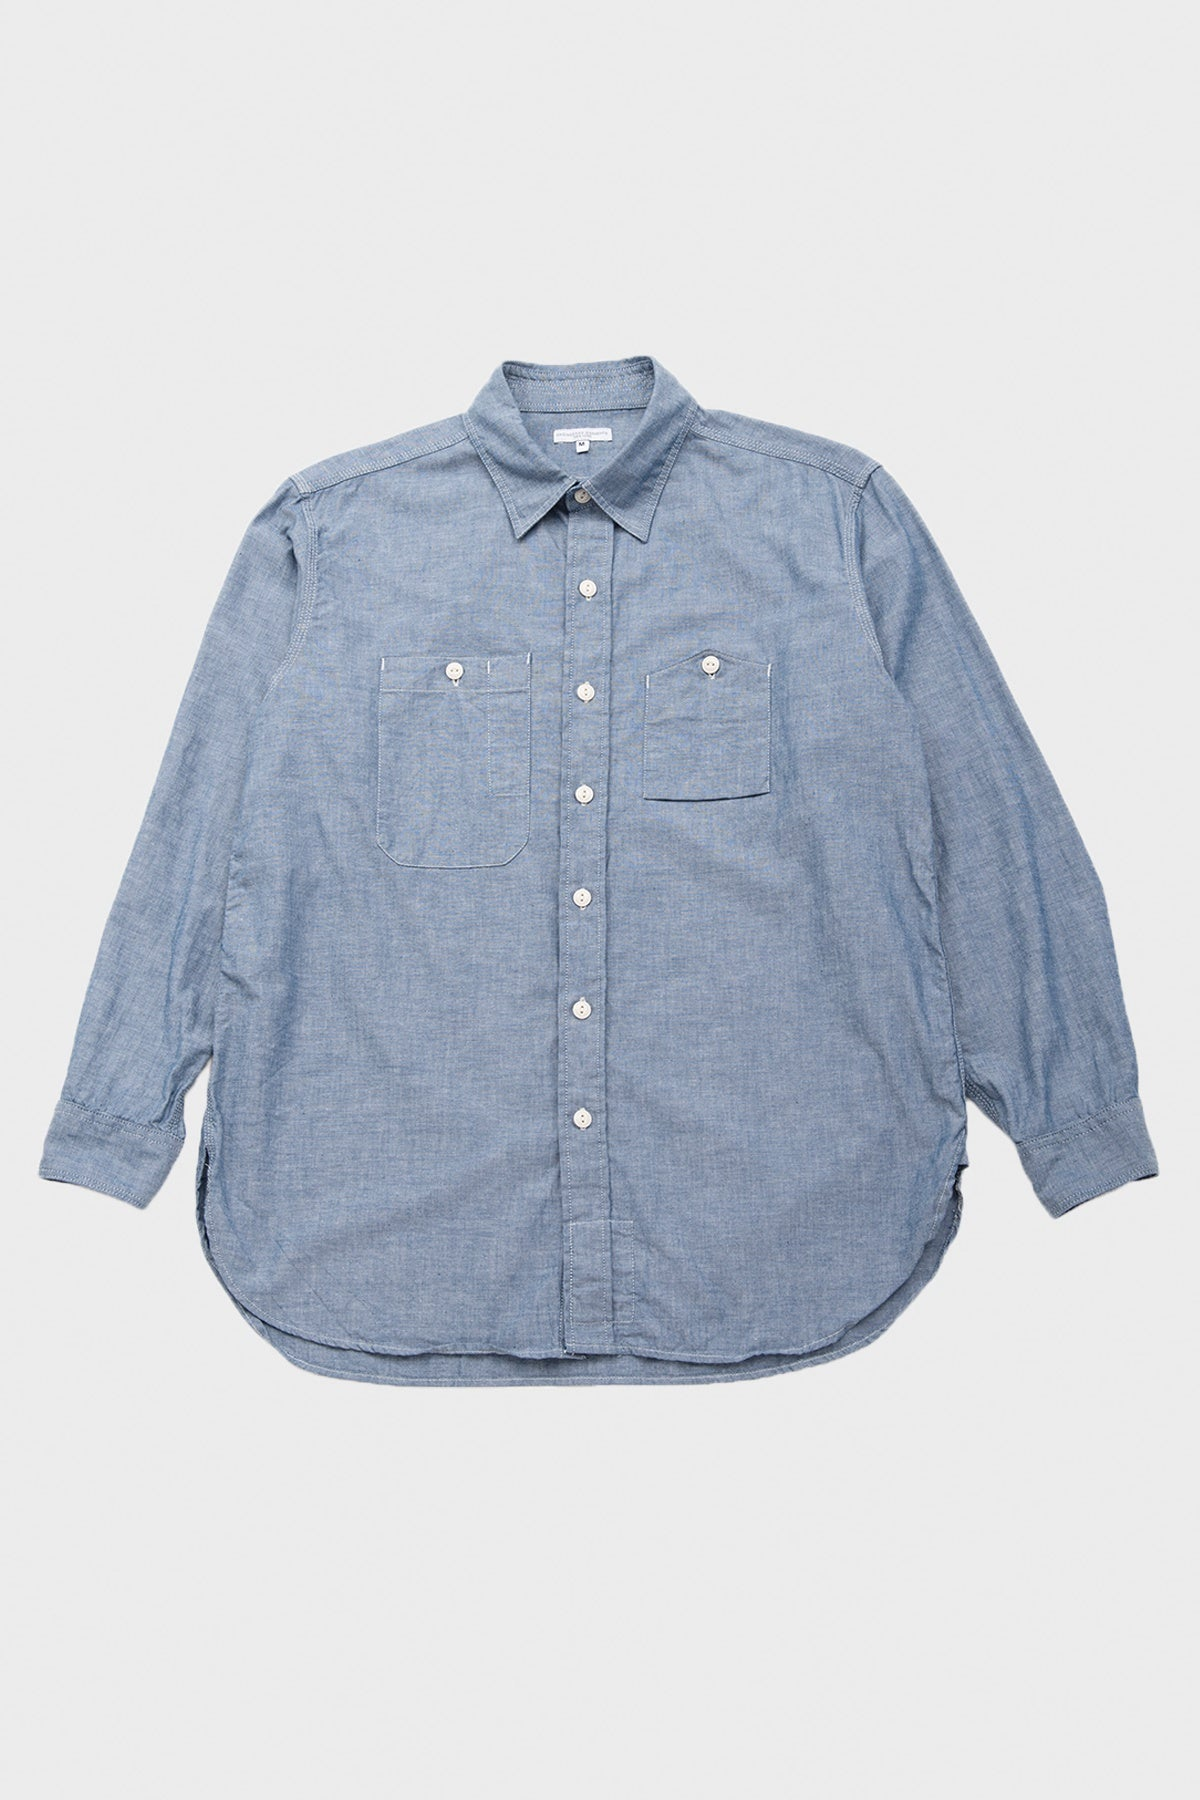 Engineered Garments - Work Shirt - Blue Cotton Chambray - Canoe Club